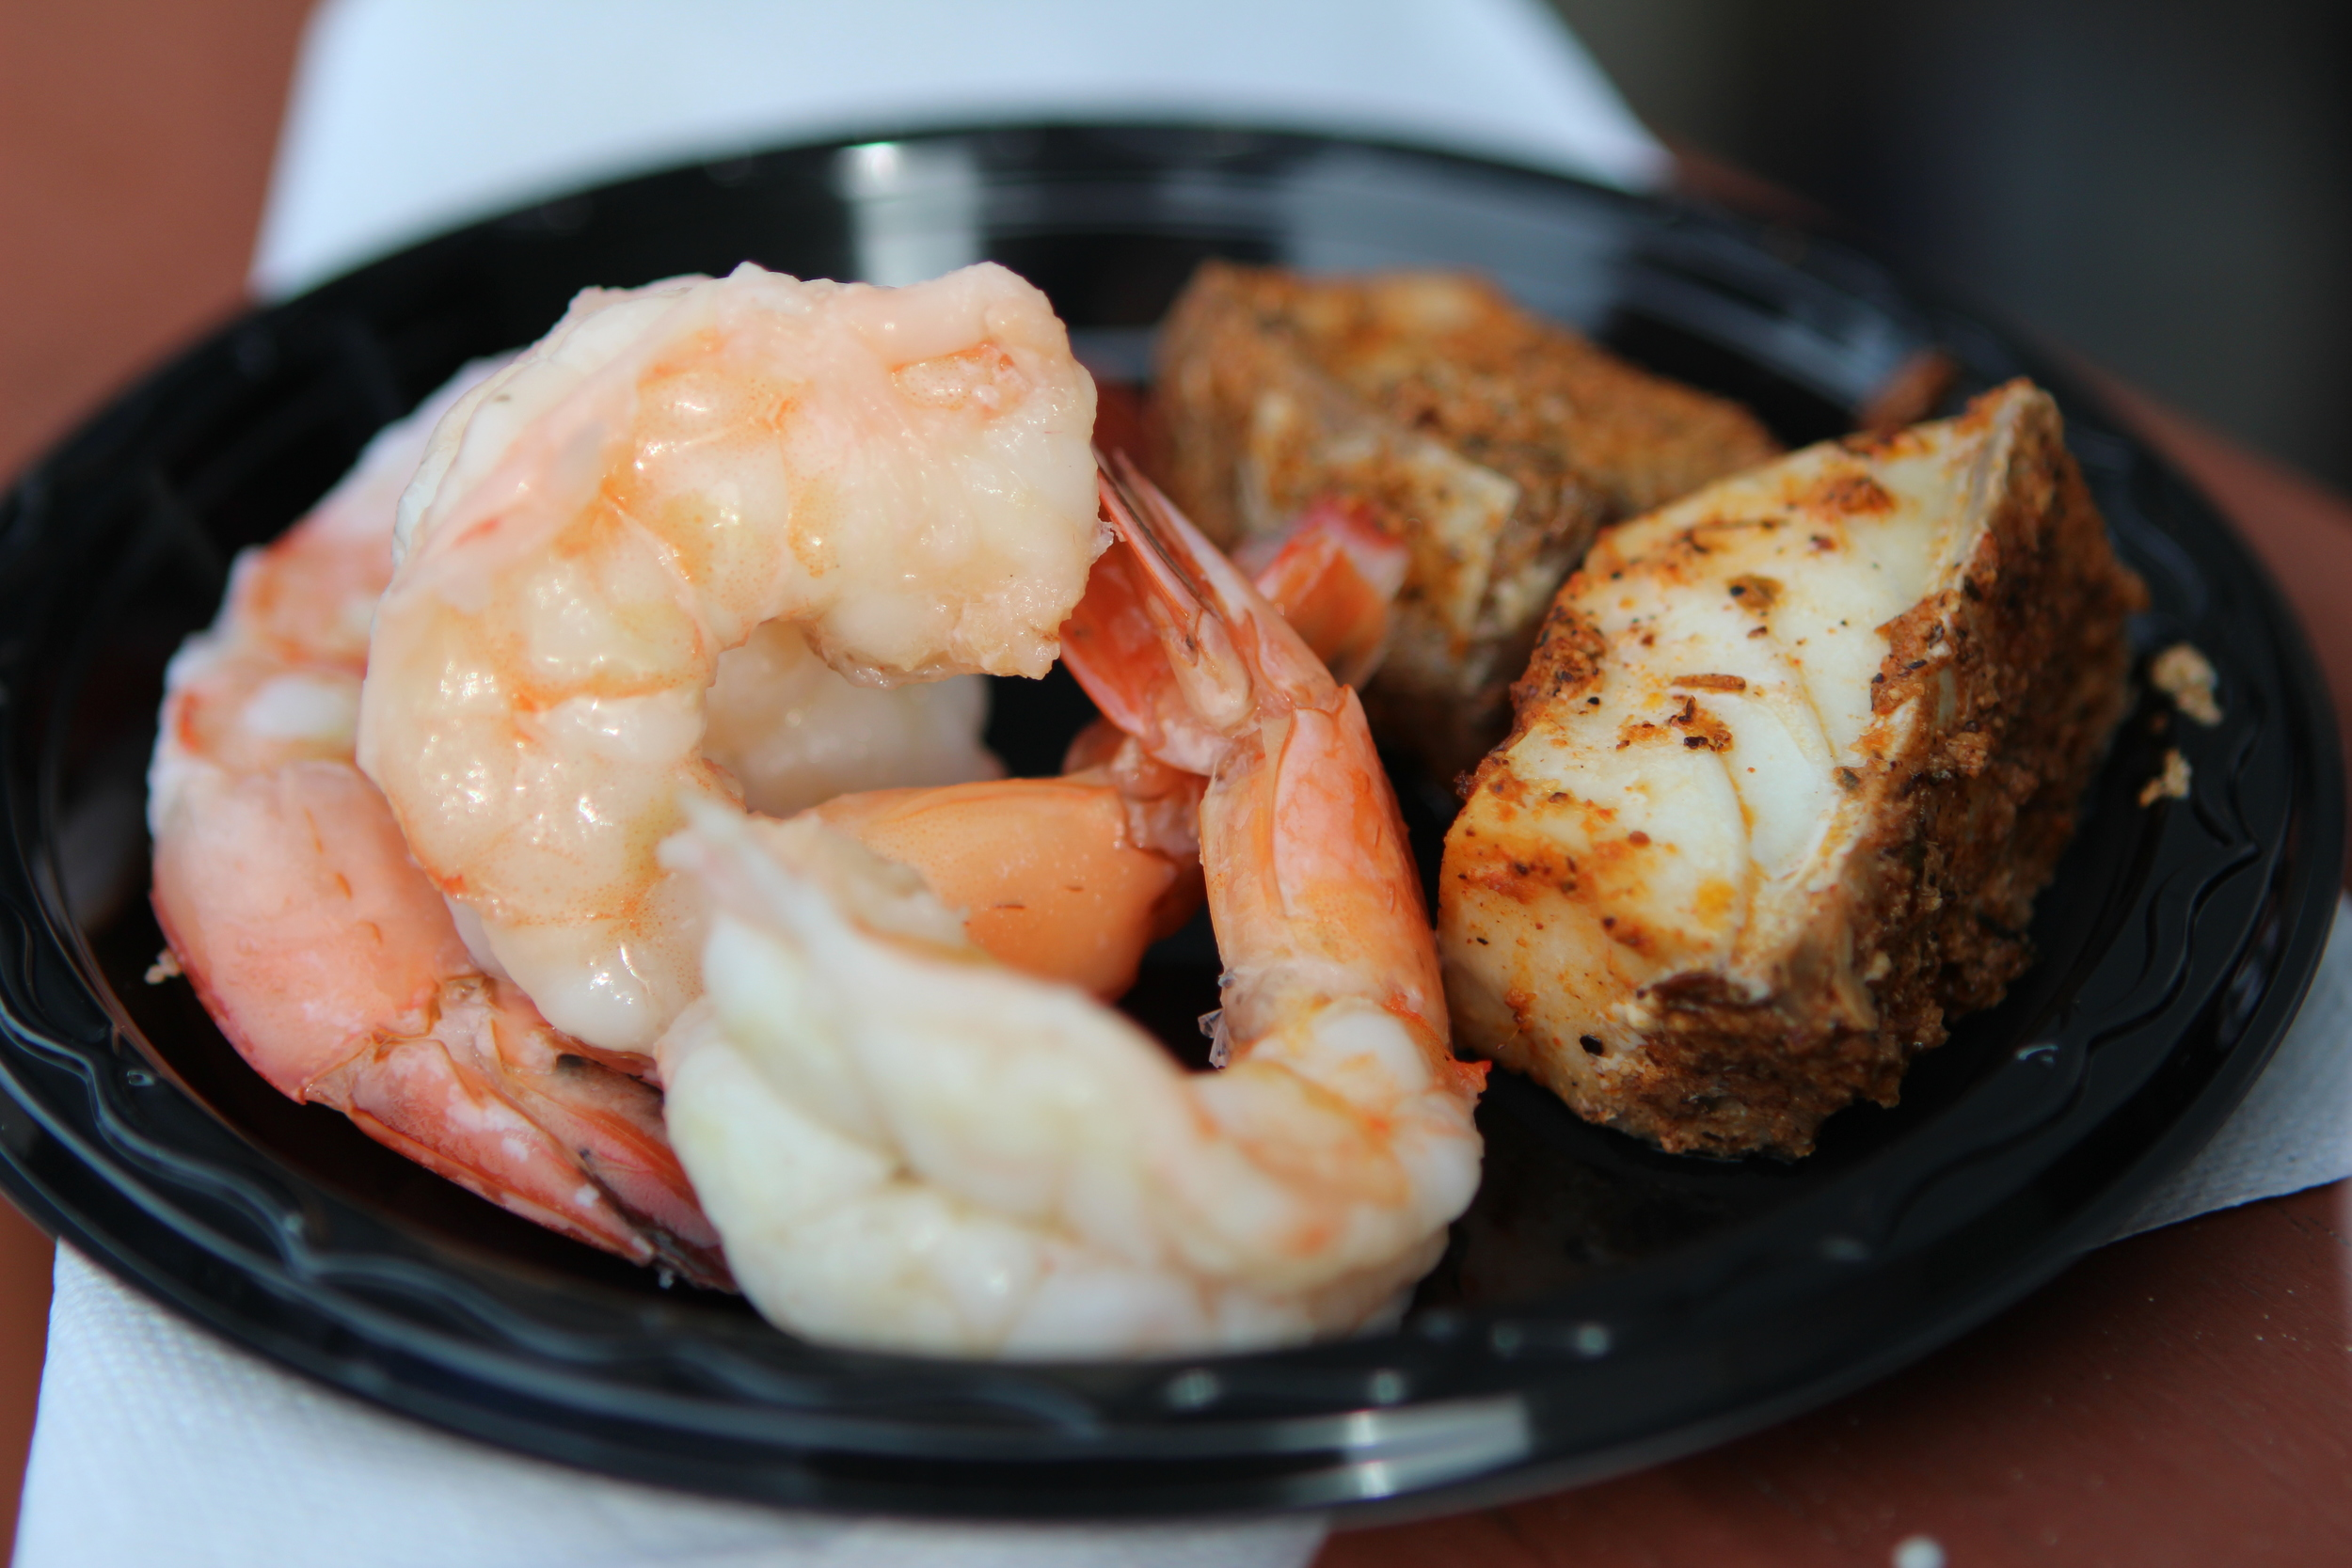 Shrimp and Rockfish Bites